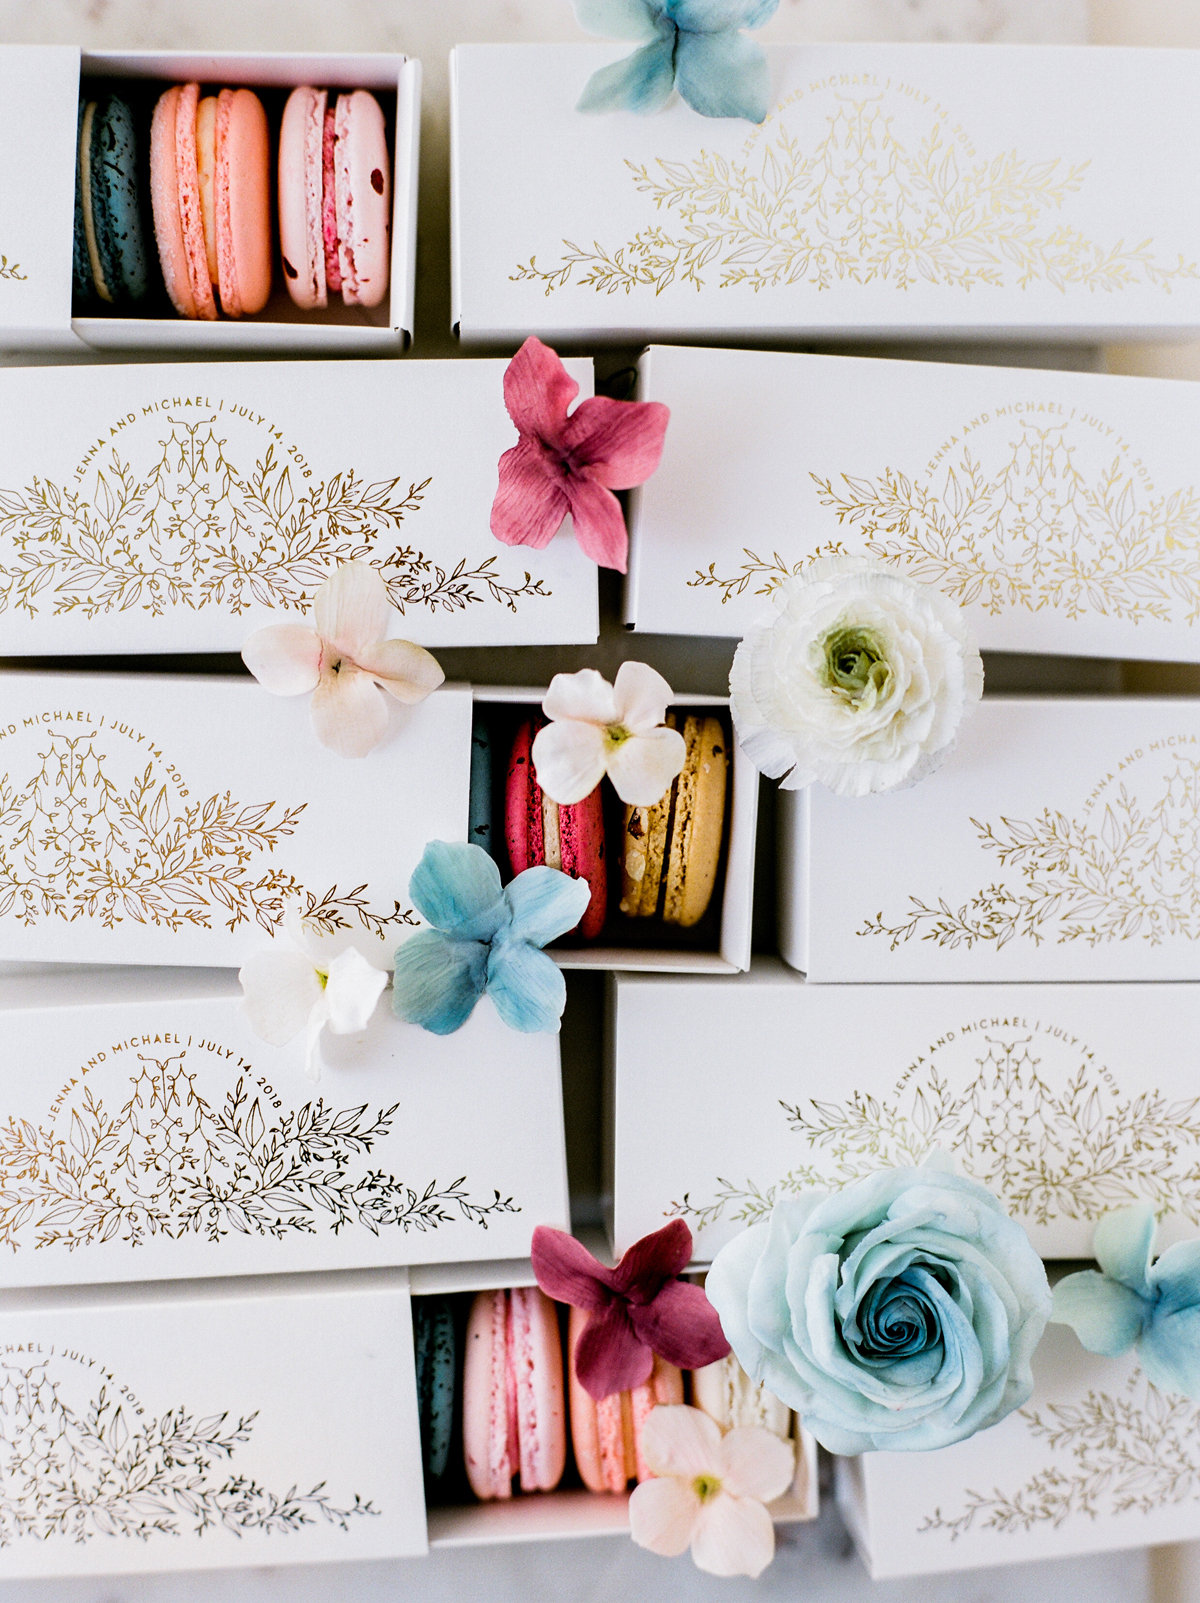 macaroon wedding favors in gold and white boxes